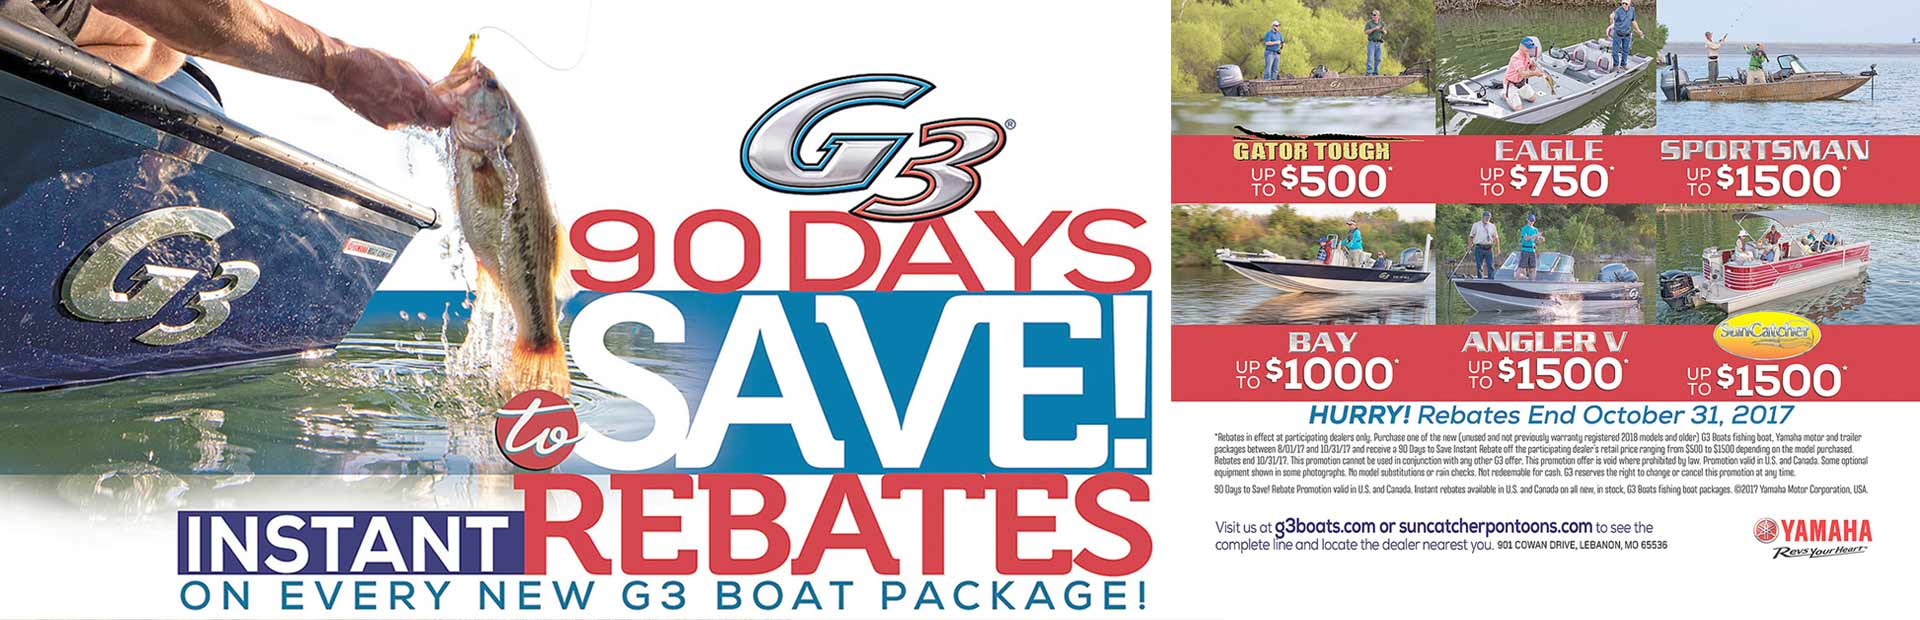 G3: G3® 90 Days to Save! Instant Rebates